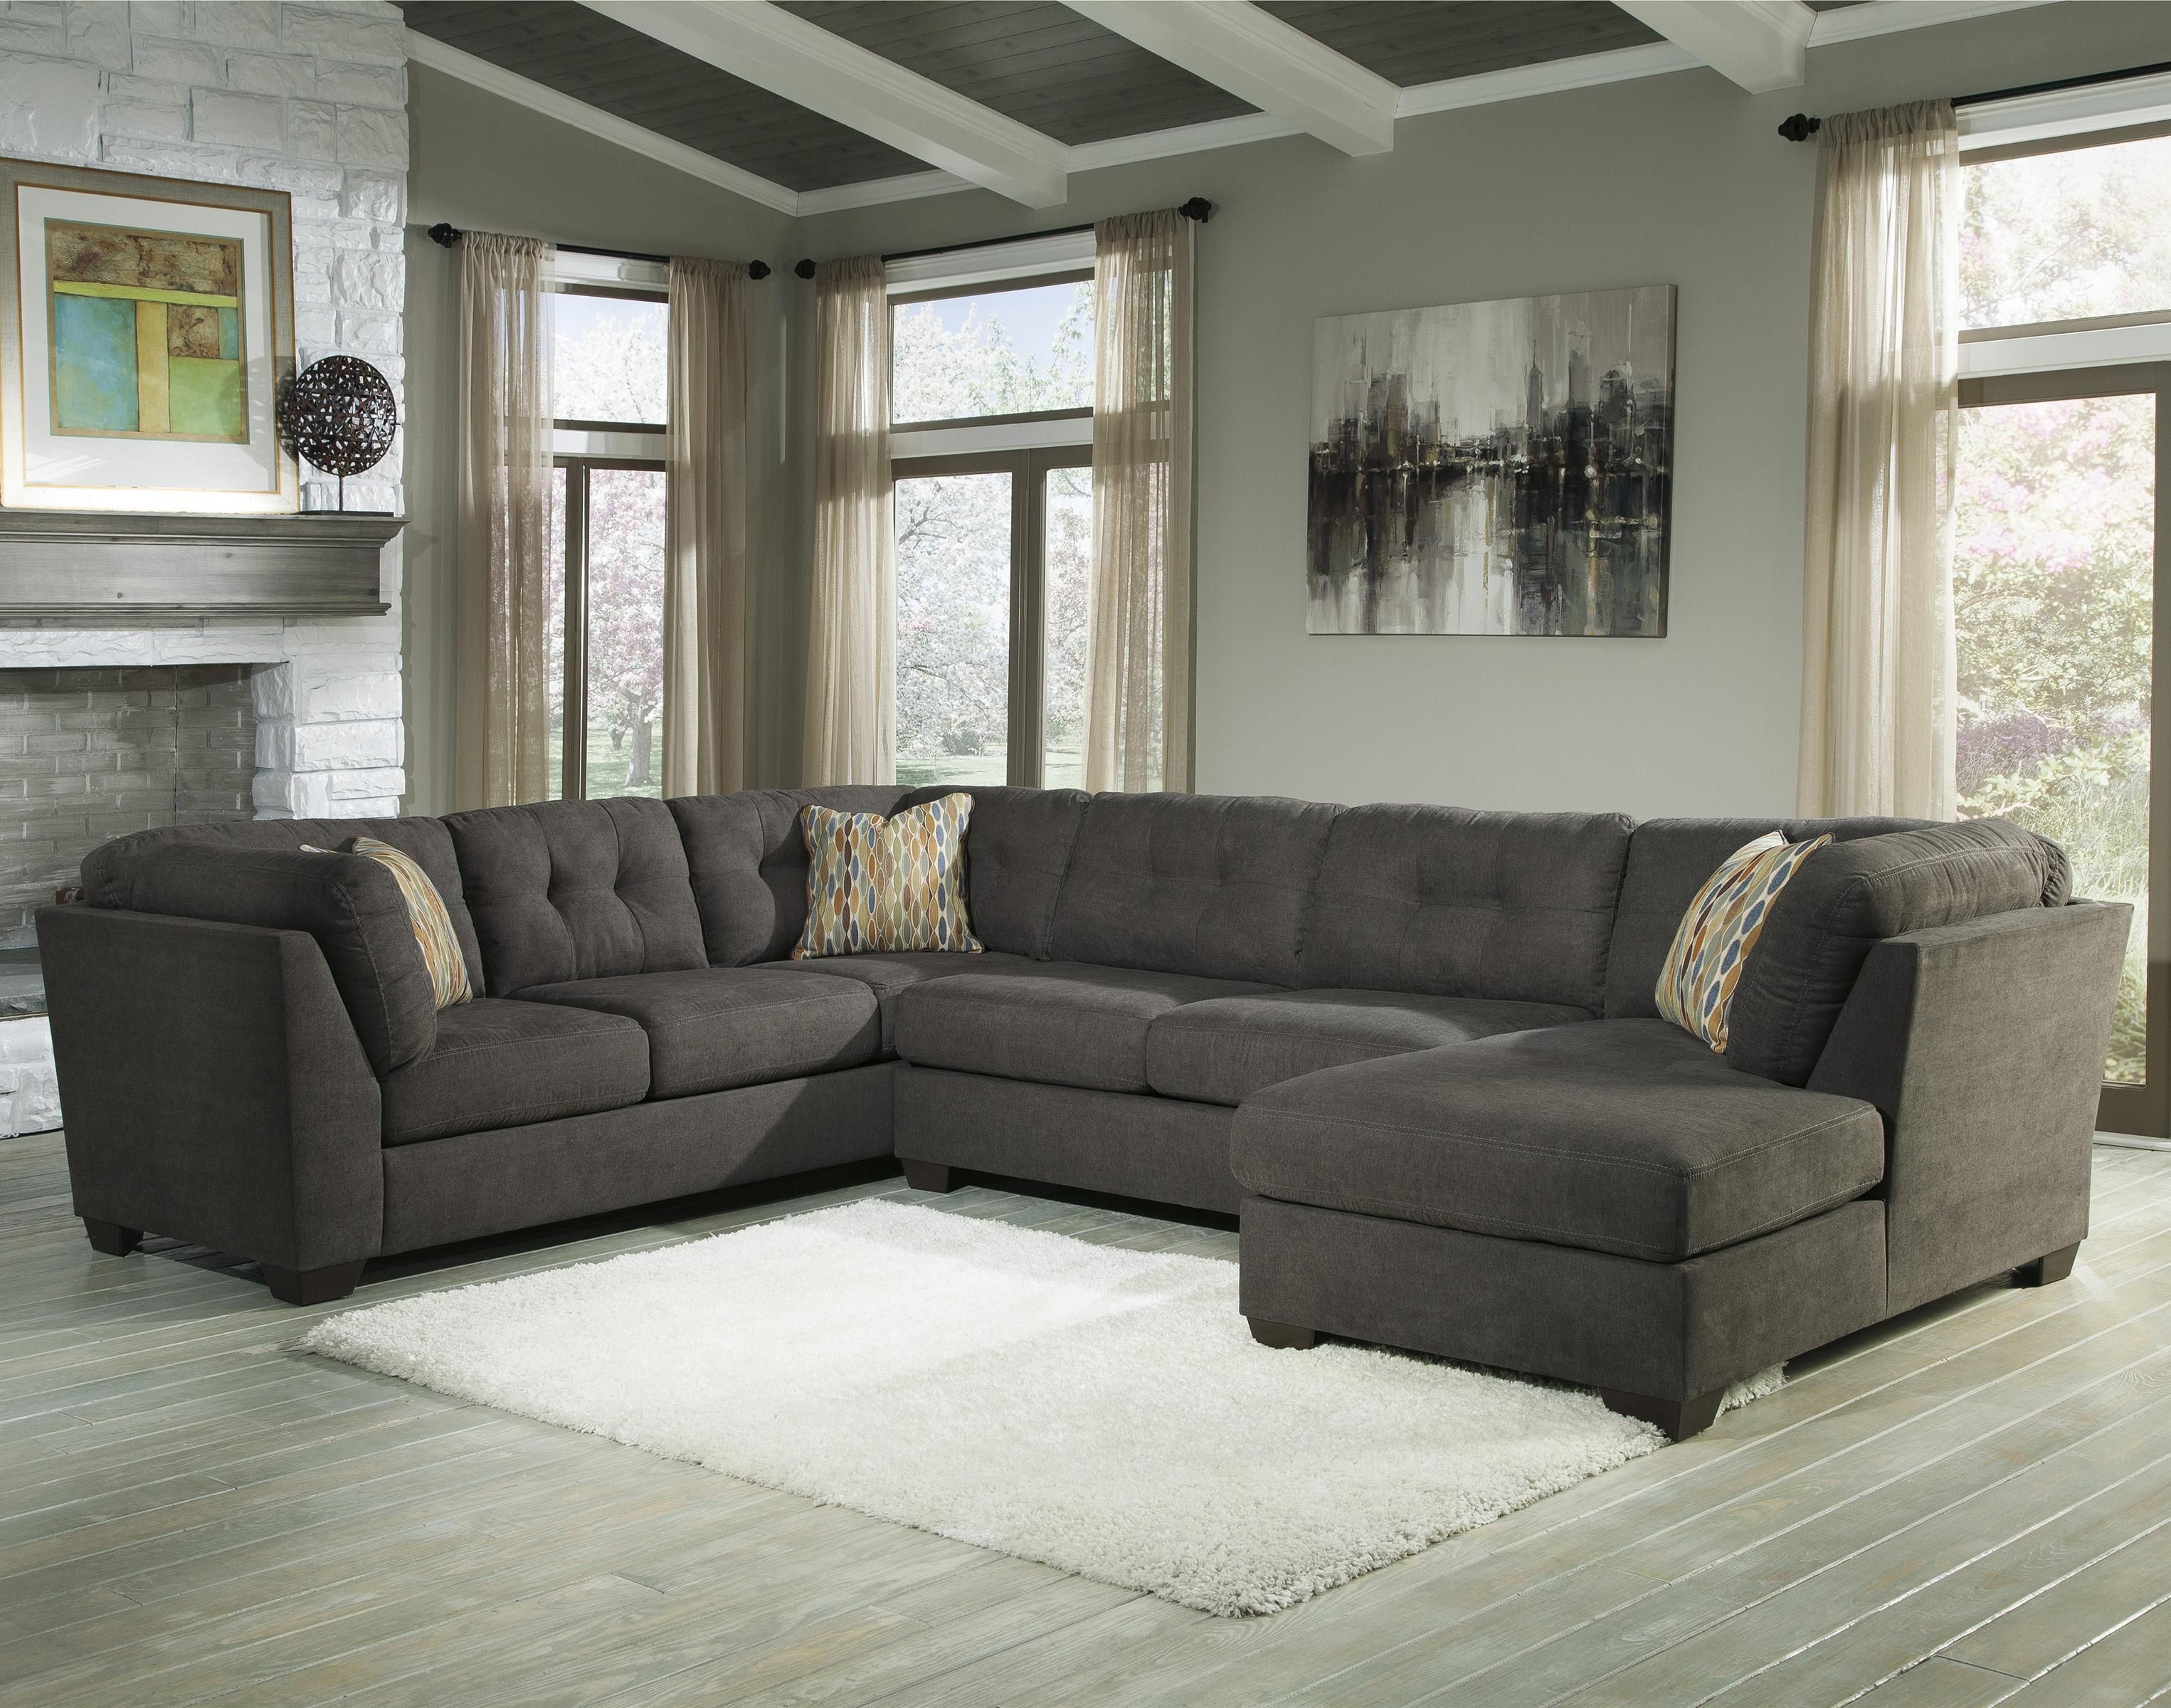 Benchcraft Delta City Steel 3 Piece Modular Sectional With Right Pertaining To 3 Piece Sectional Sleeper Sofa (Image 6 of 15)